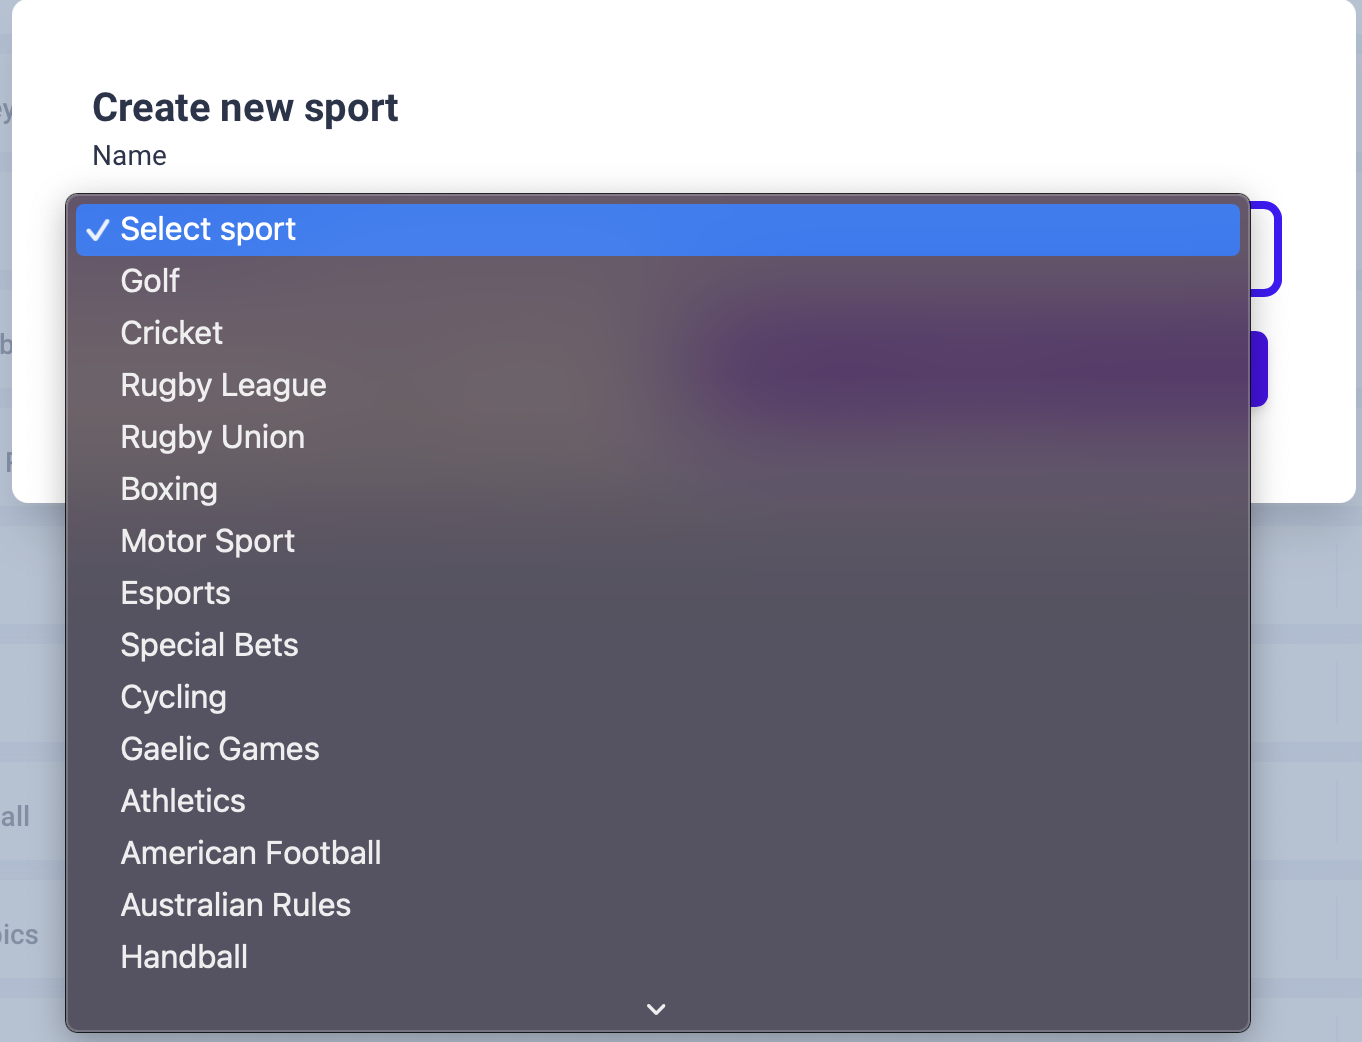 Available sports for tracking bets